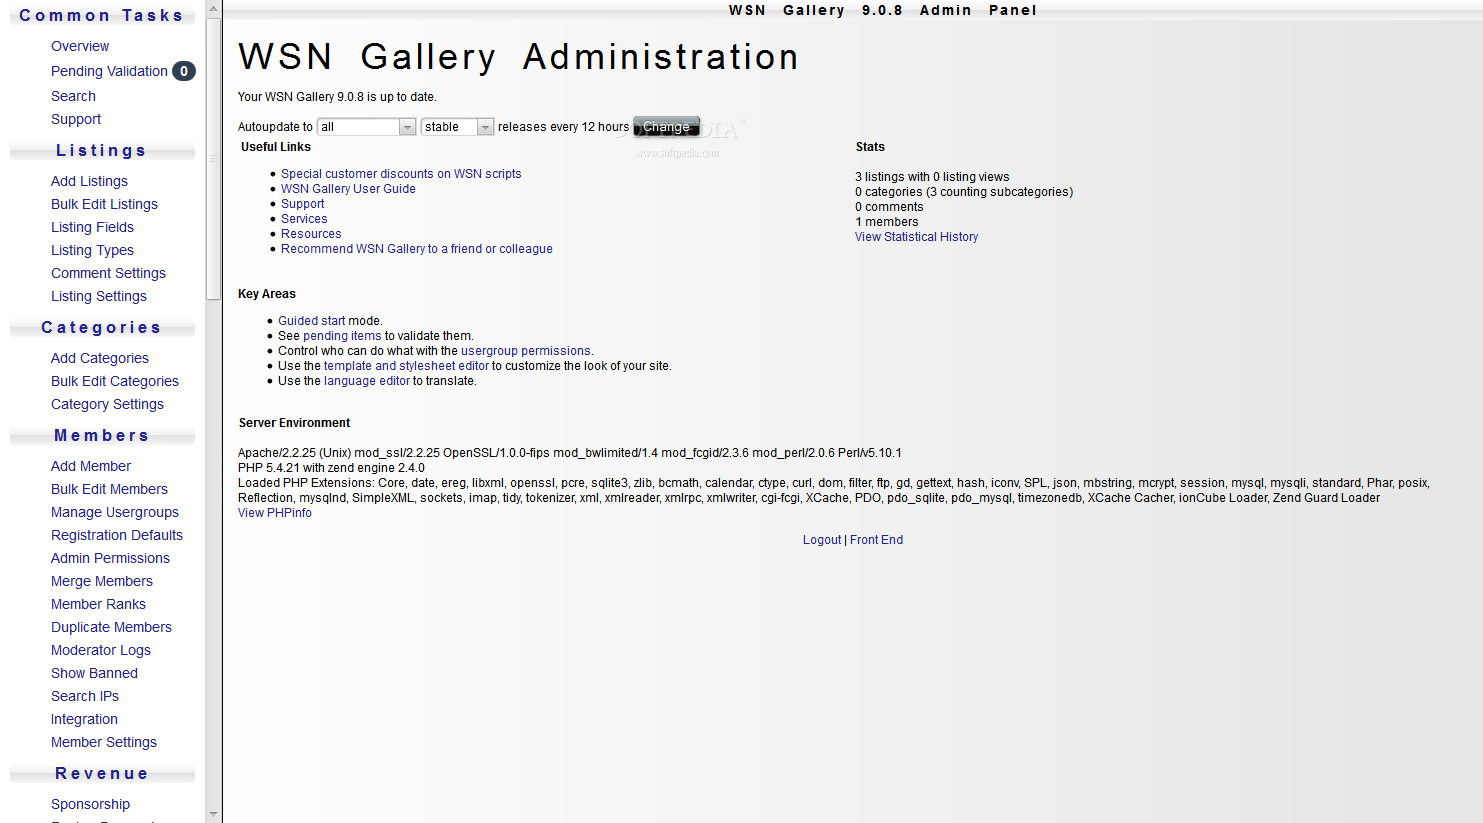 WSN Gallery - An admin panel is also included with WSN Gallery